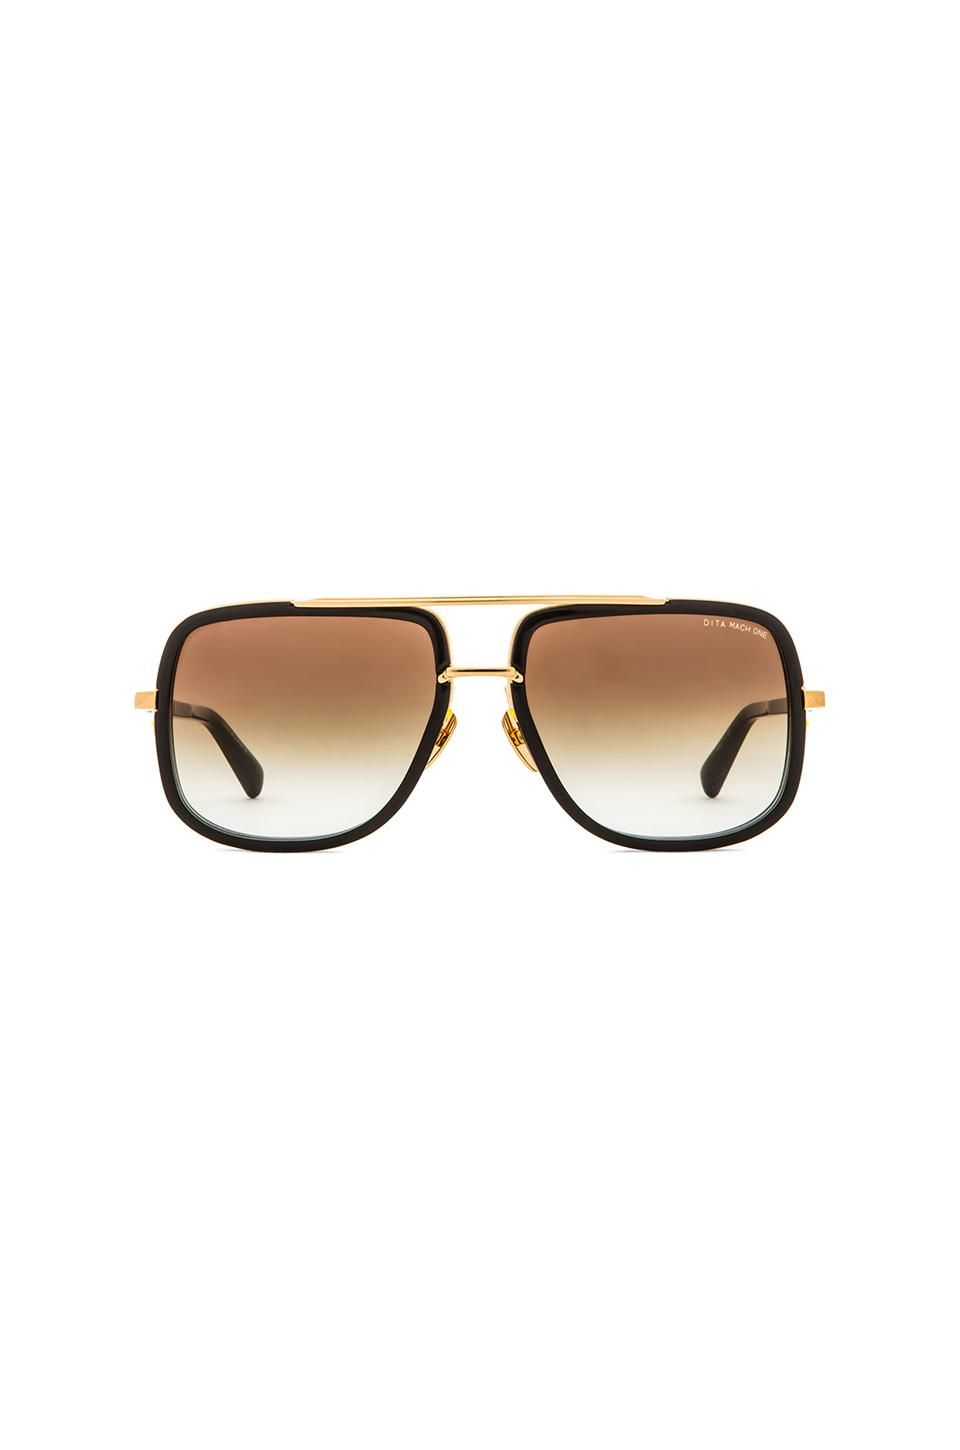 c16cc39890 Dita Mach-One Sunglasses in Shiny 18K Gold   Brown Lenses